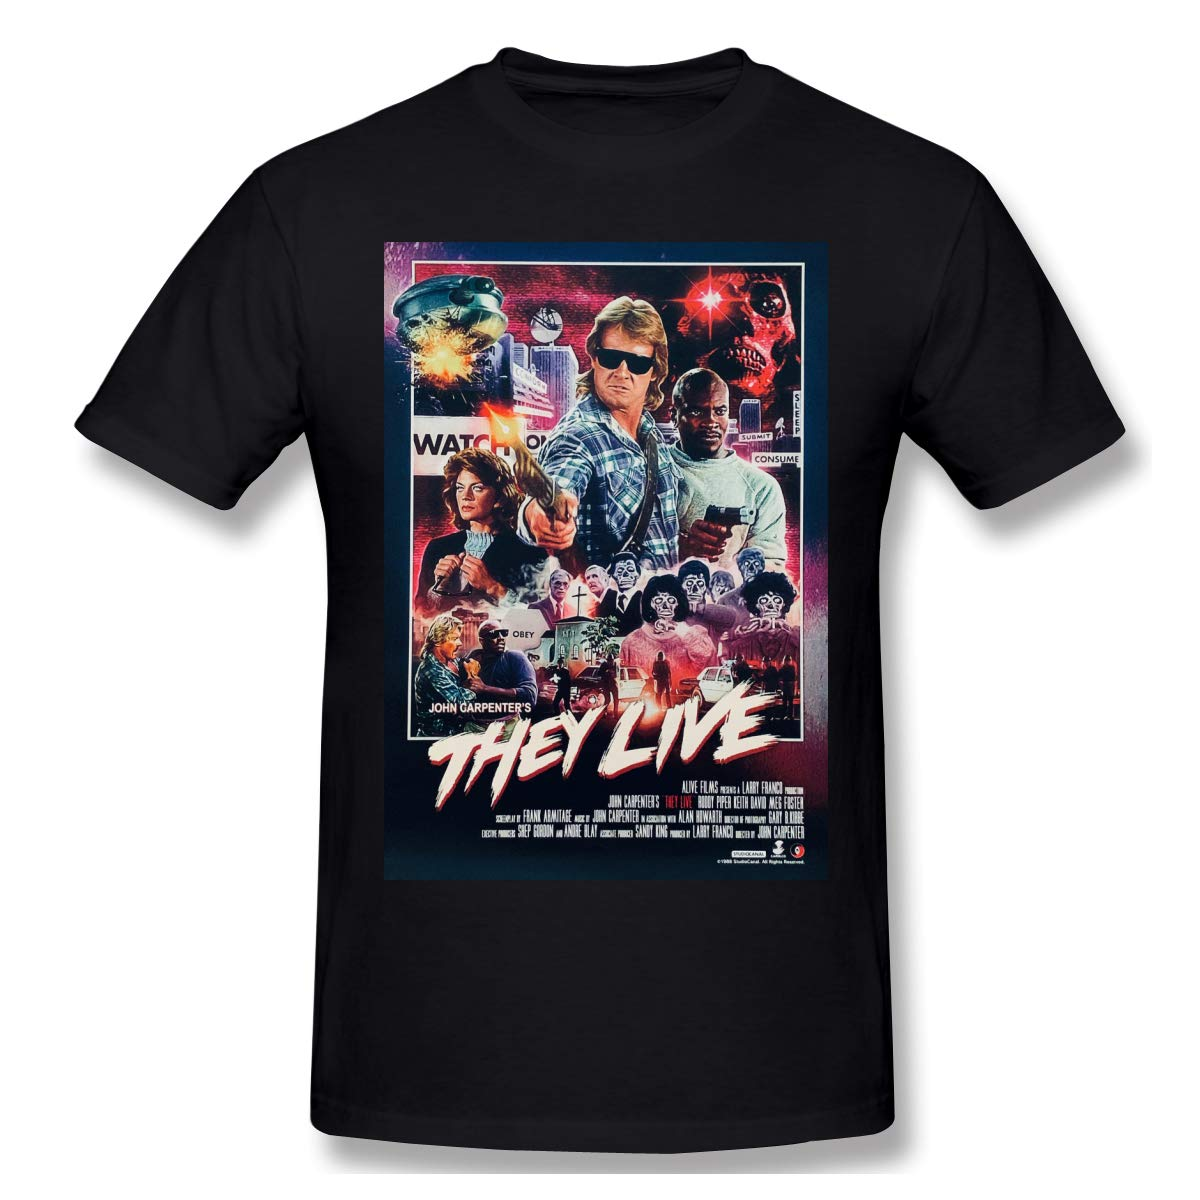 Rebeccarcarter Heritage Short Sleeve Black They Live For S Shirts